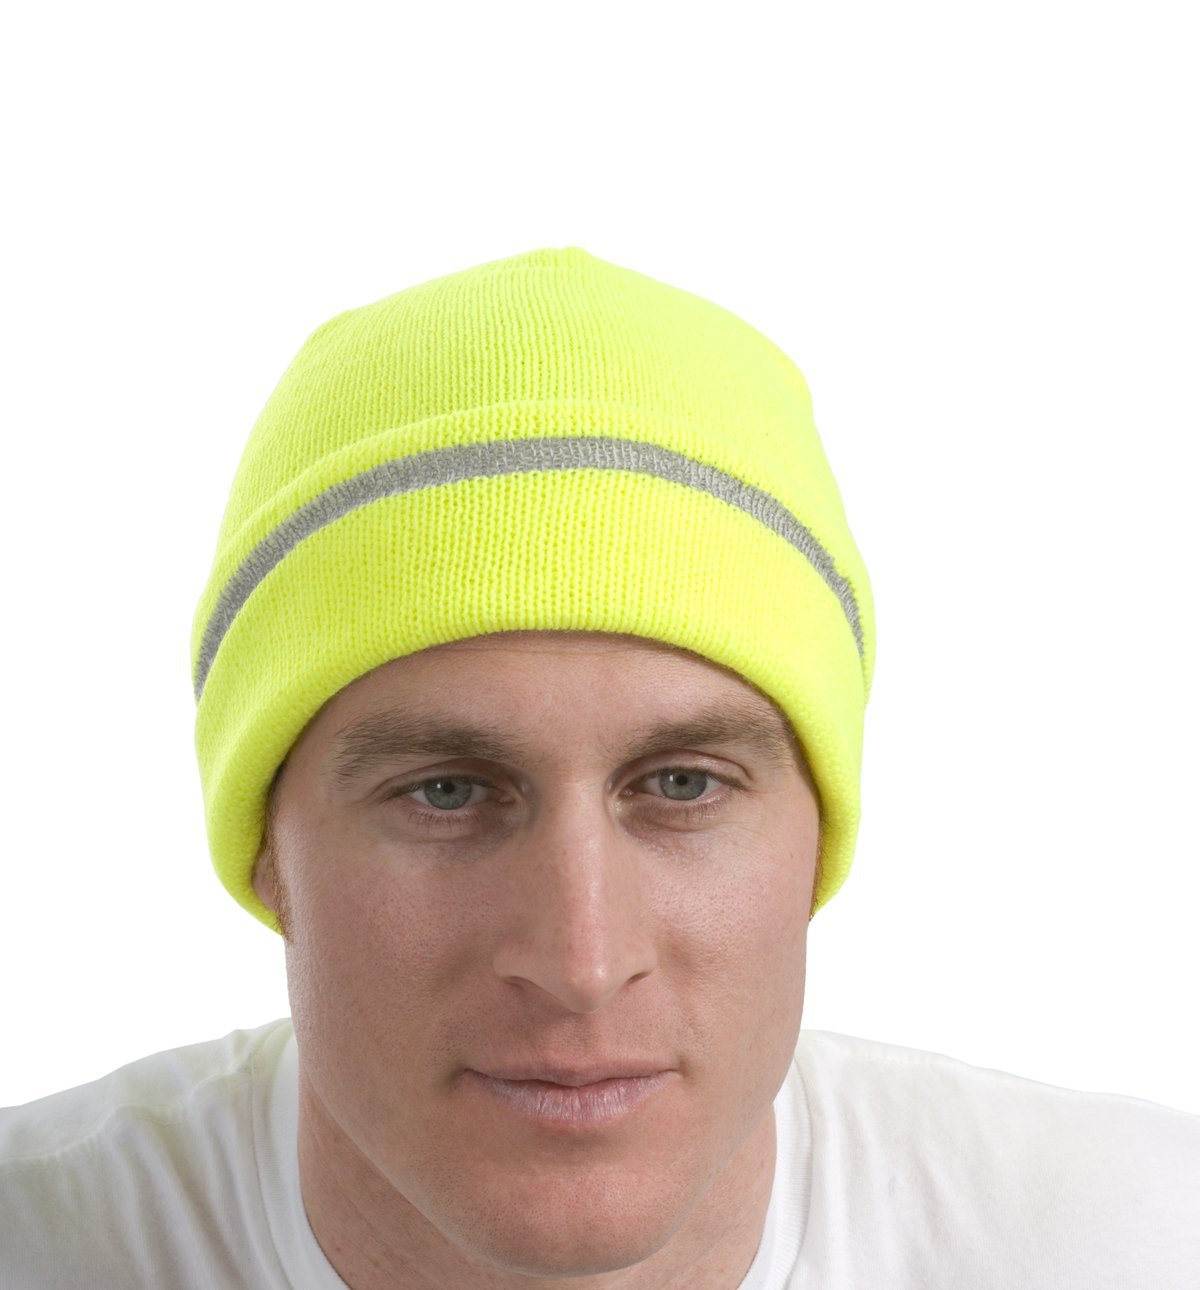 6e4274466ea Safety Beanie Cap with Reflective Stripe